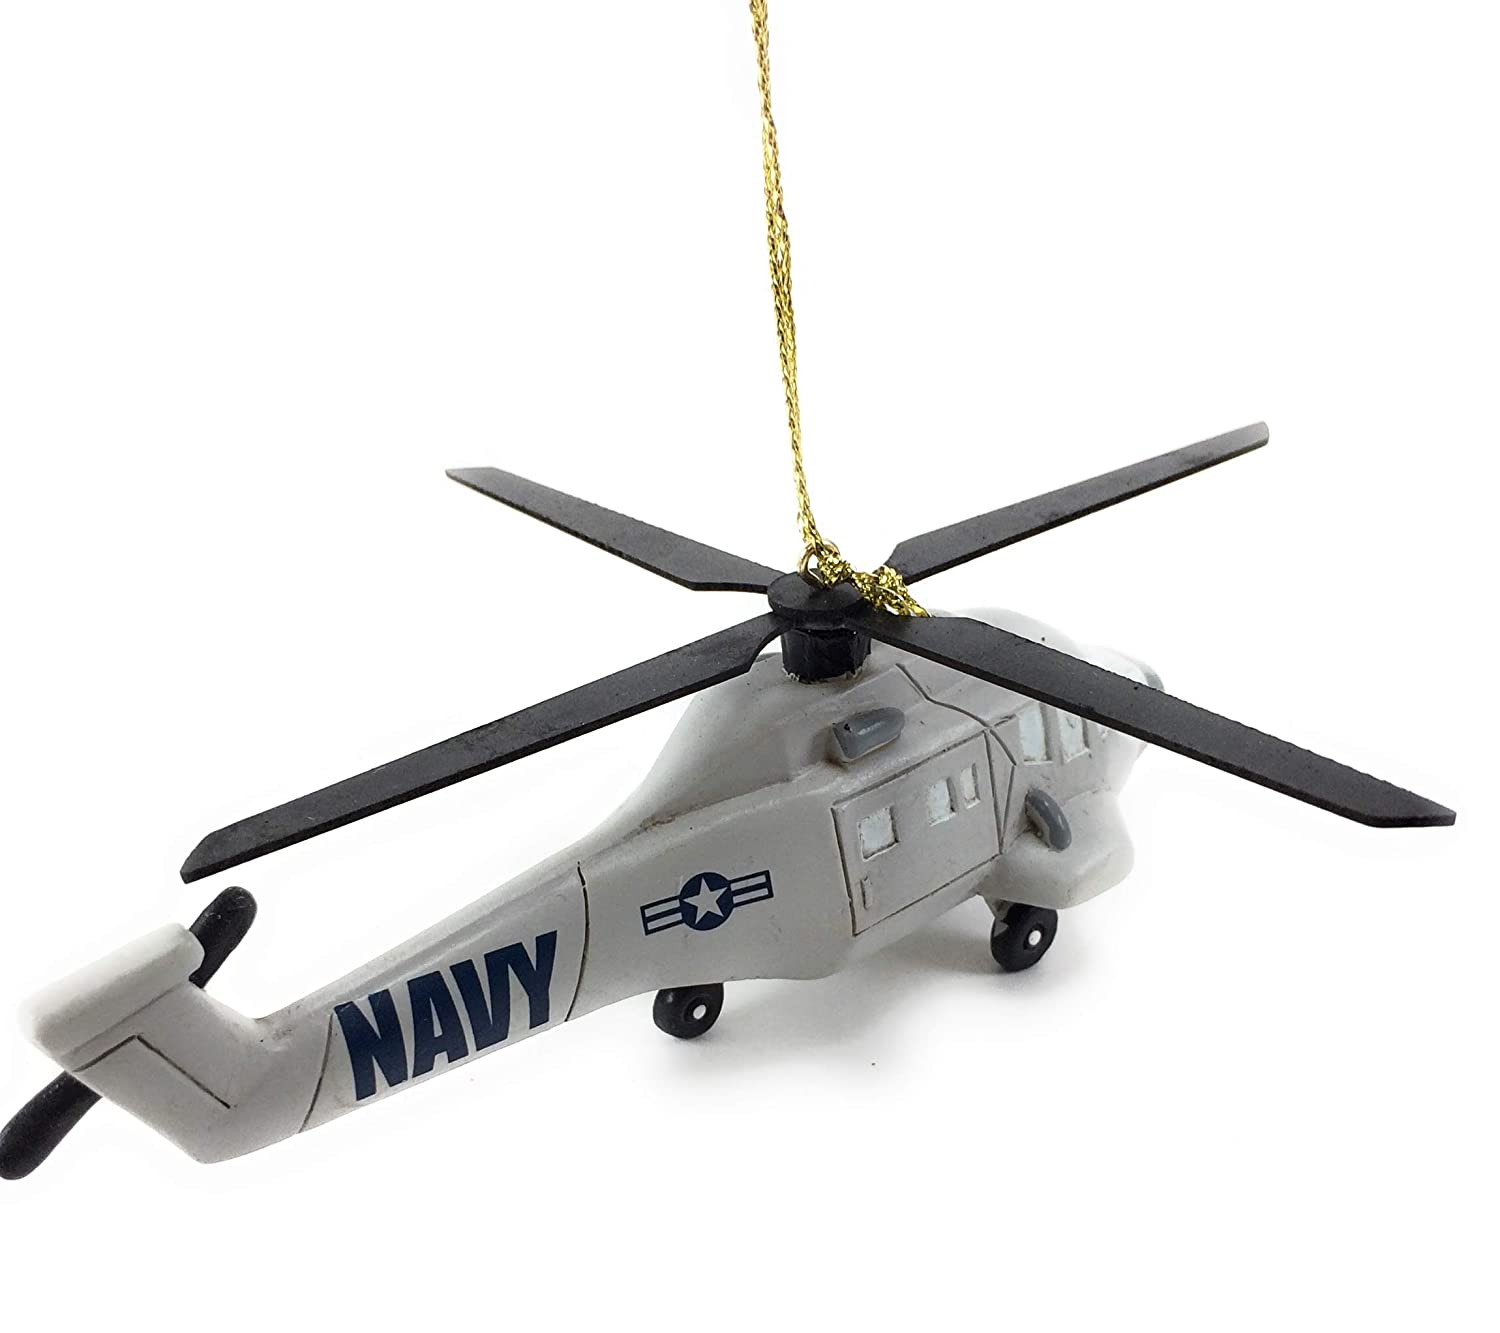 Kurt Adler U.S Navy Helicopter Ornament NA2182